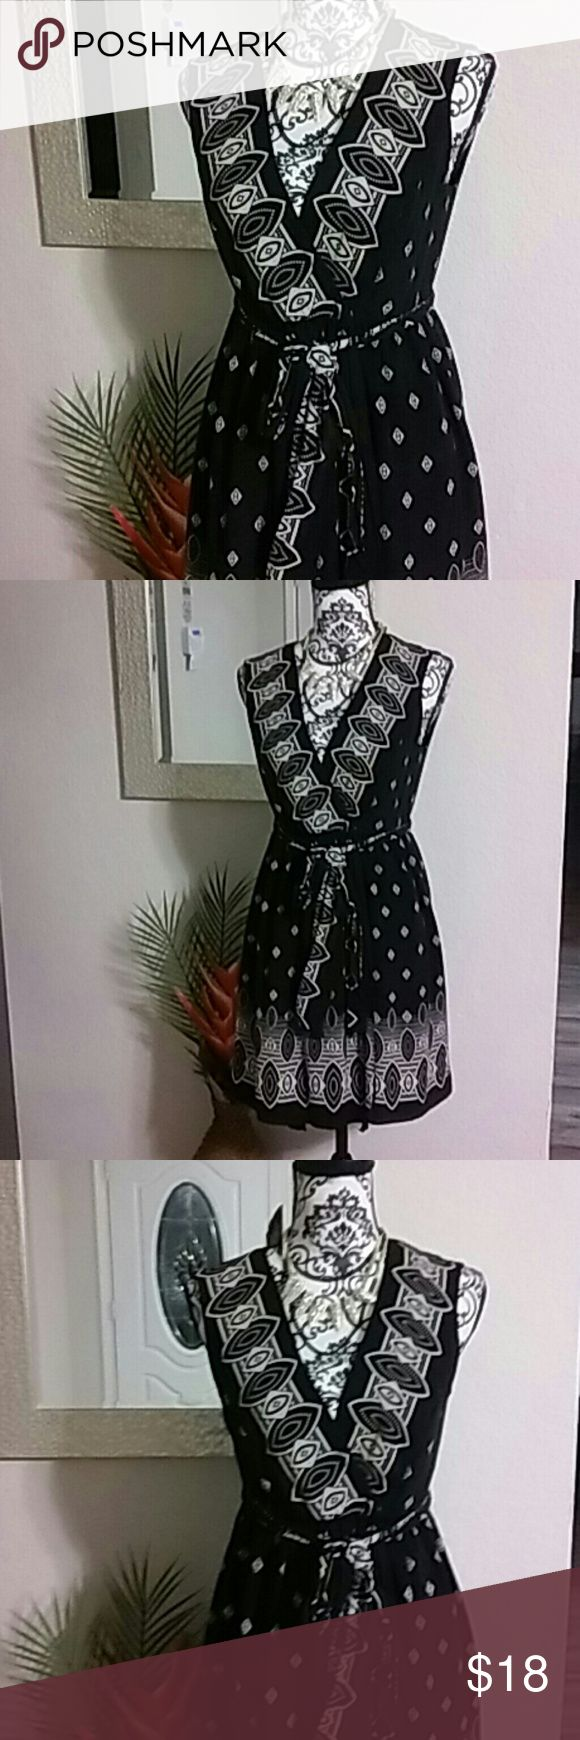 Anna Sui dress Sleeveless wrap dress. Fully lined silk. Adjustable waist belt. Made for Target line. Perfect with a pair of leggings or a blazer Anna Sui Dresses